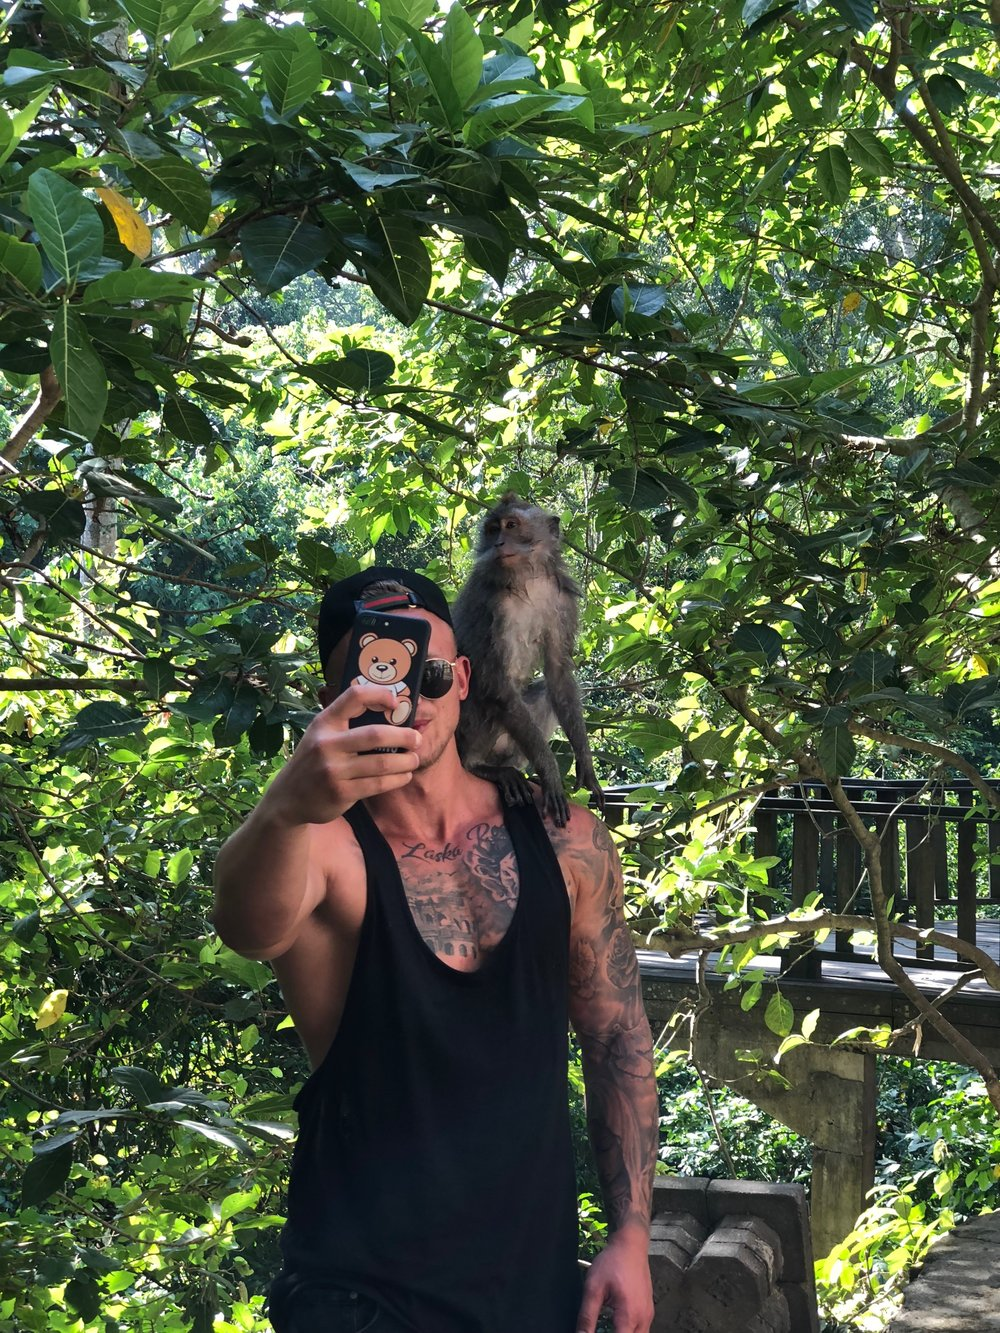 As cool as it might be to get a selfie with a monkey, we can't advise it